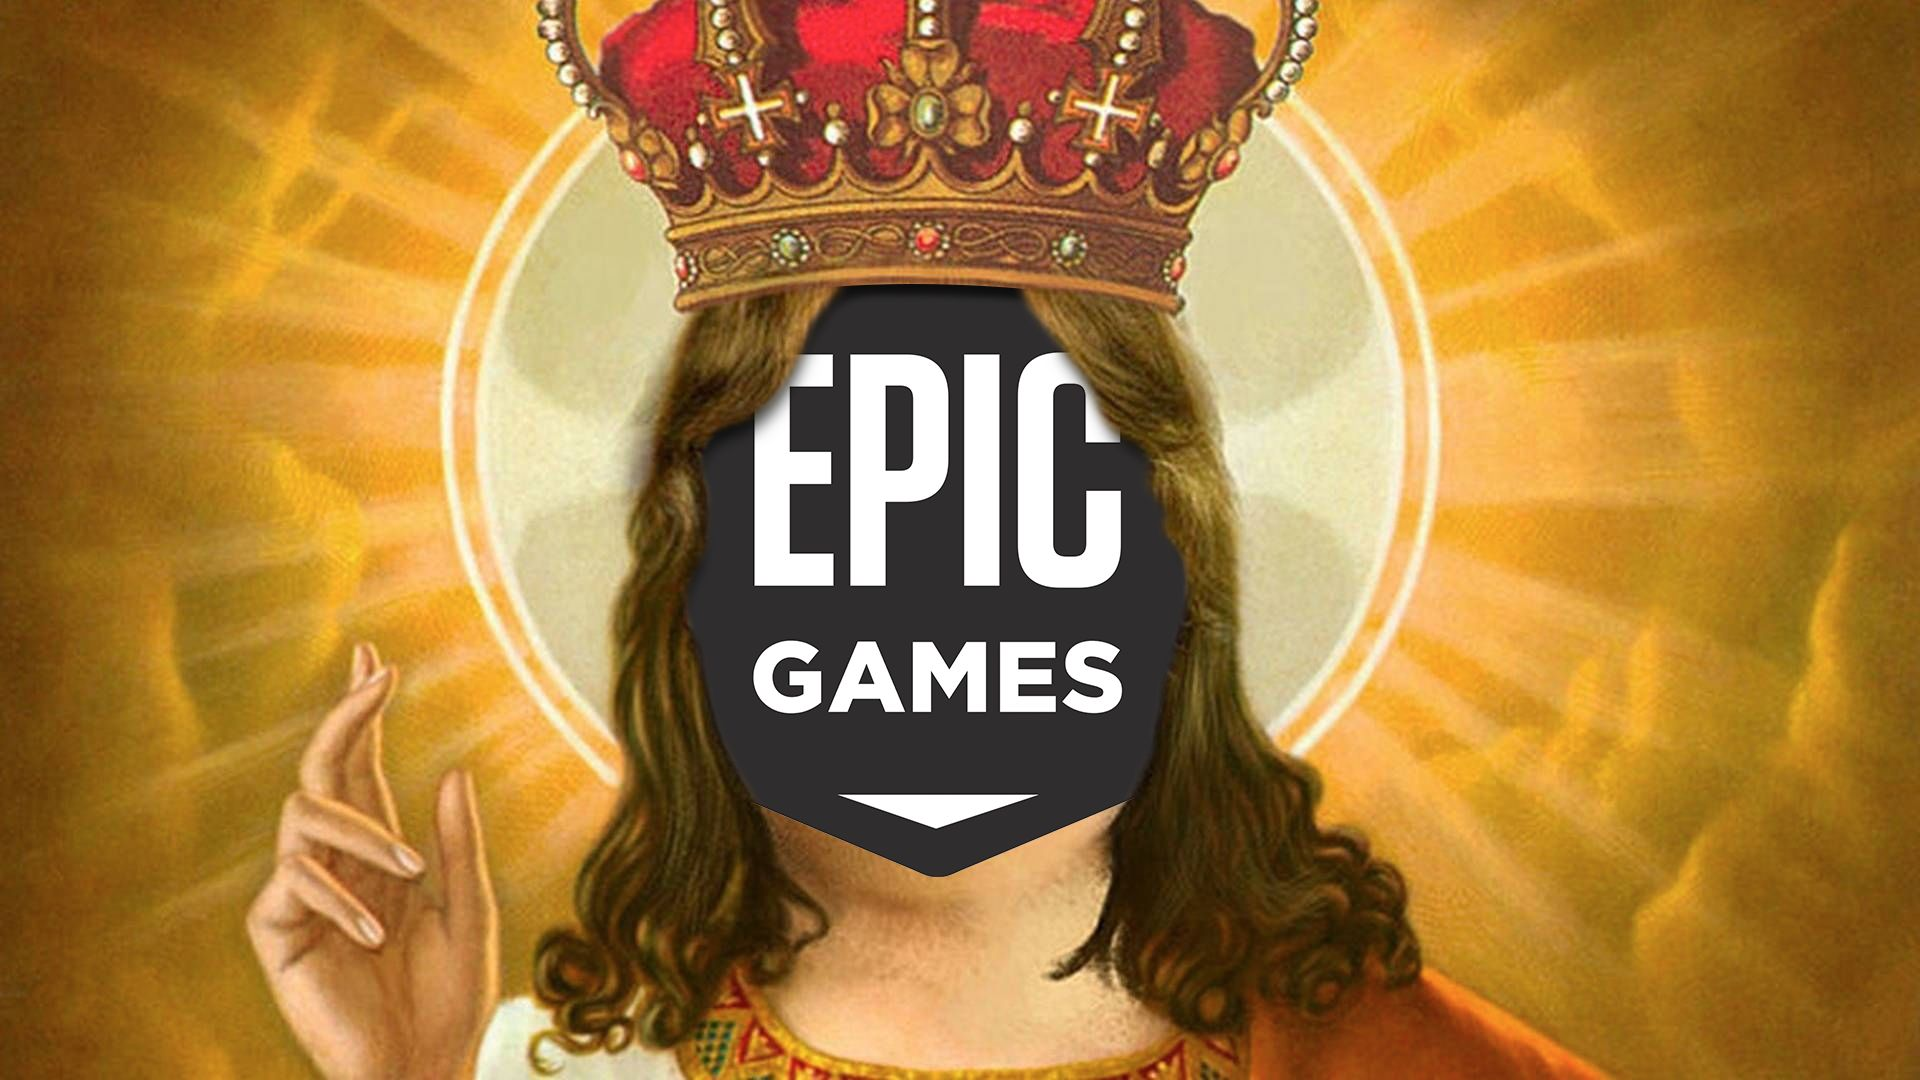 The Epic Games store is getting its first major sale ...